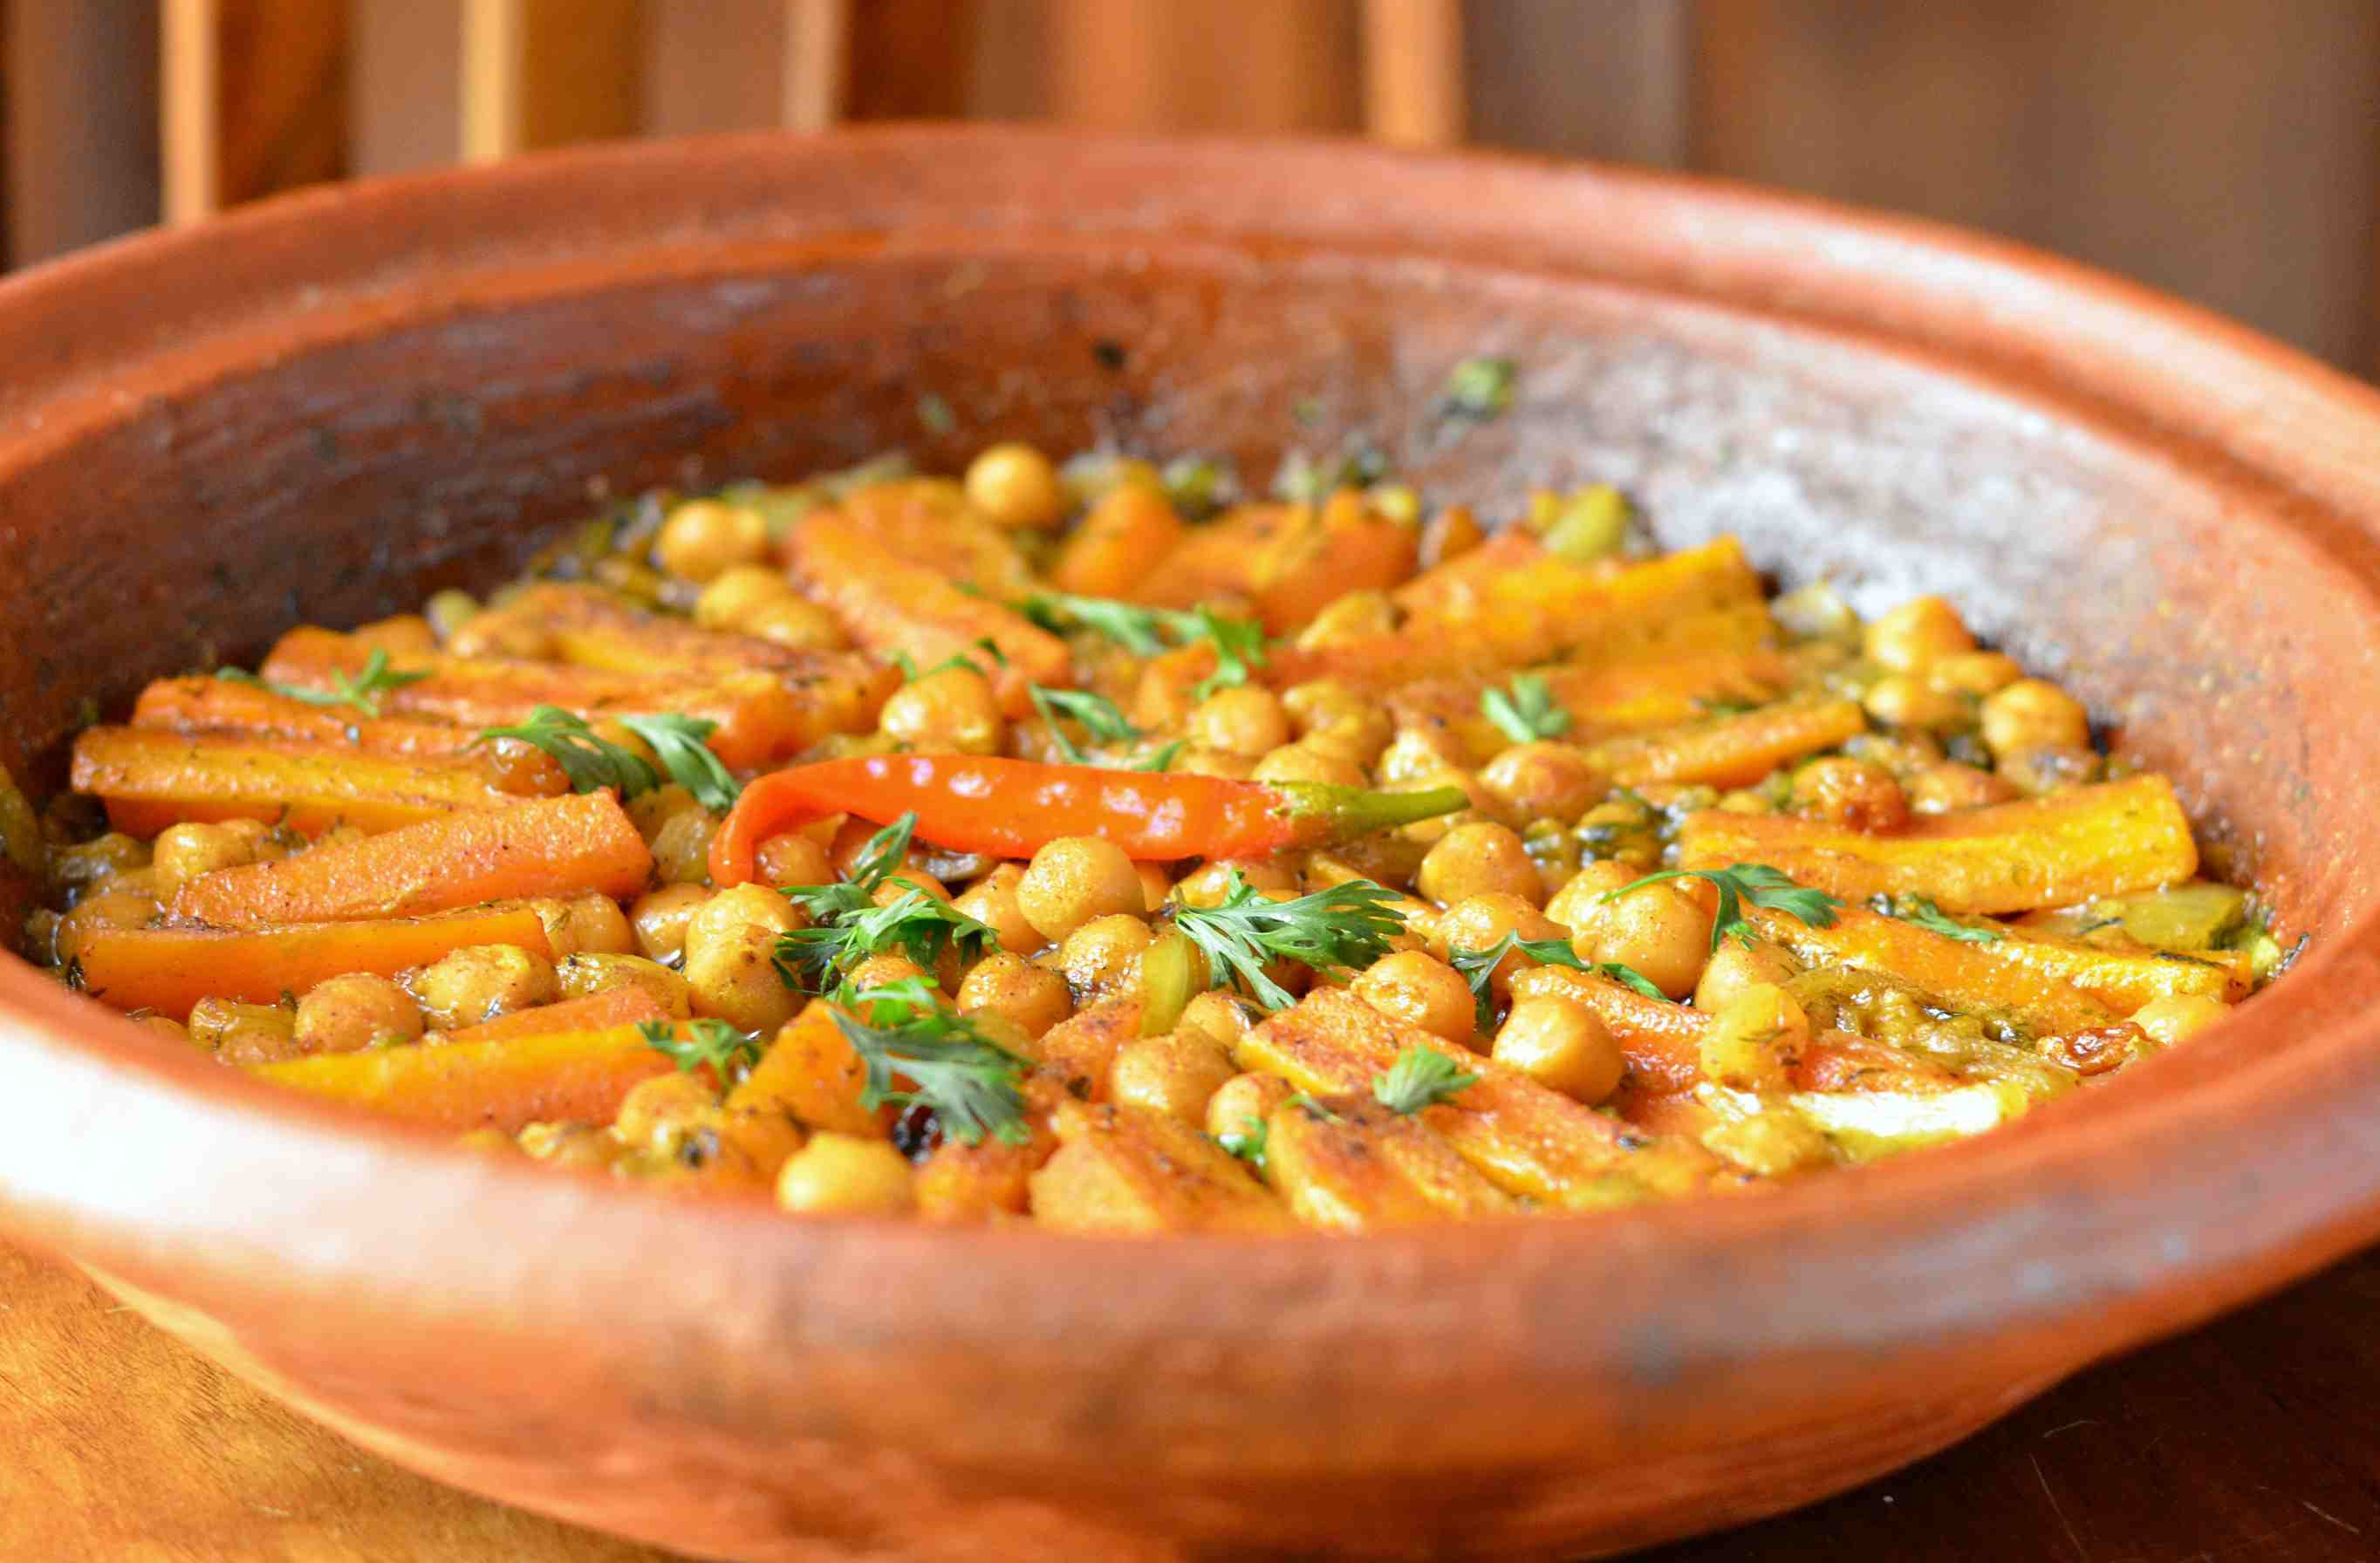 Moroccan Vegetarian Tagine with Chickpeas and Carrots